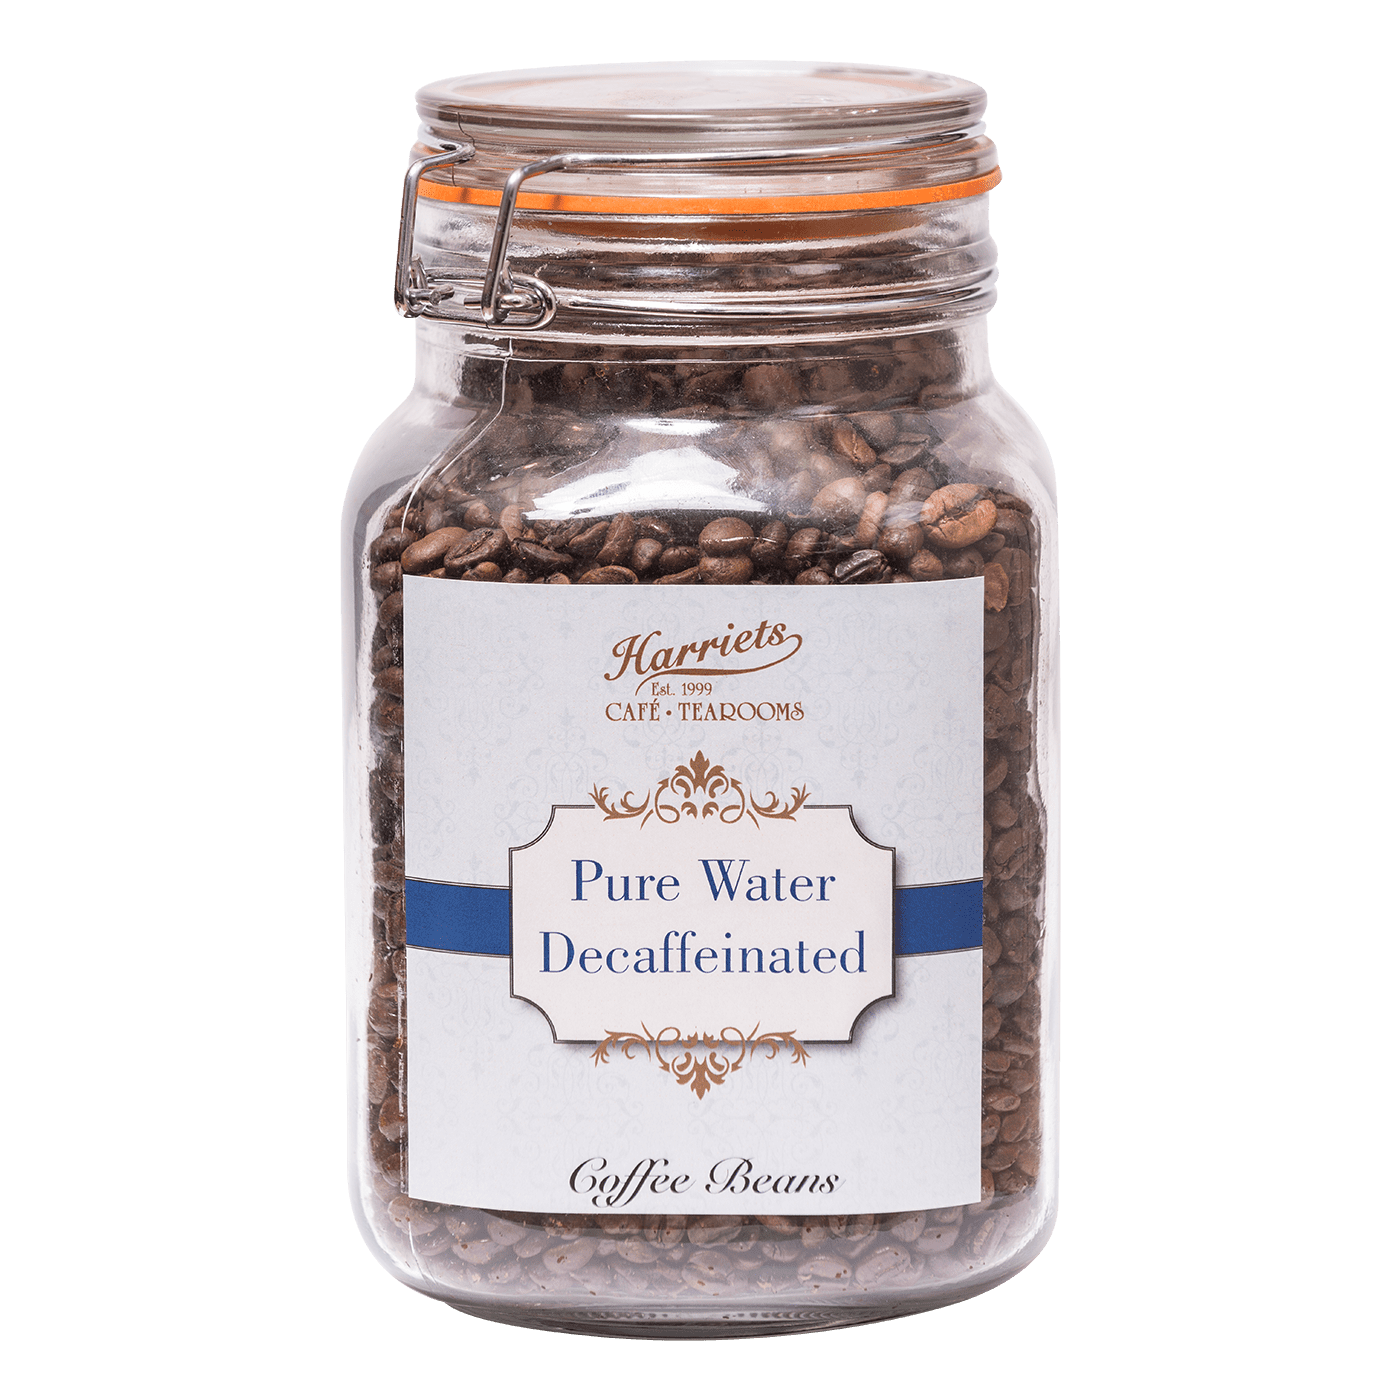 Pure Water Decaffeinated